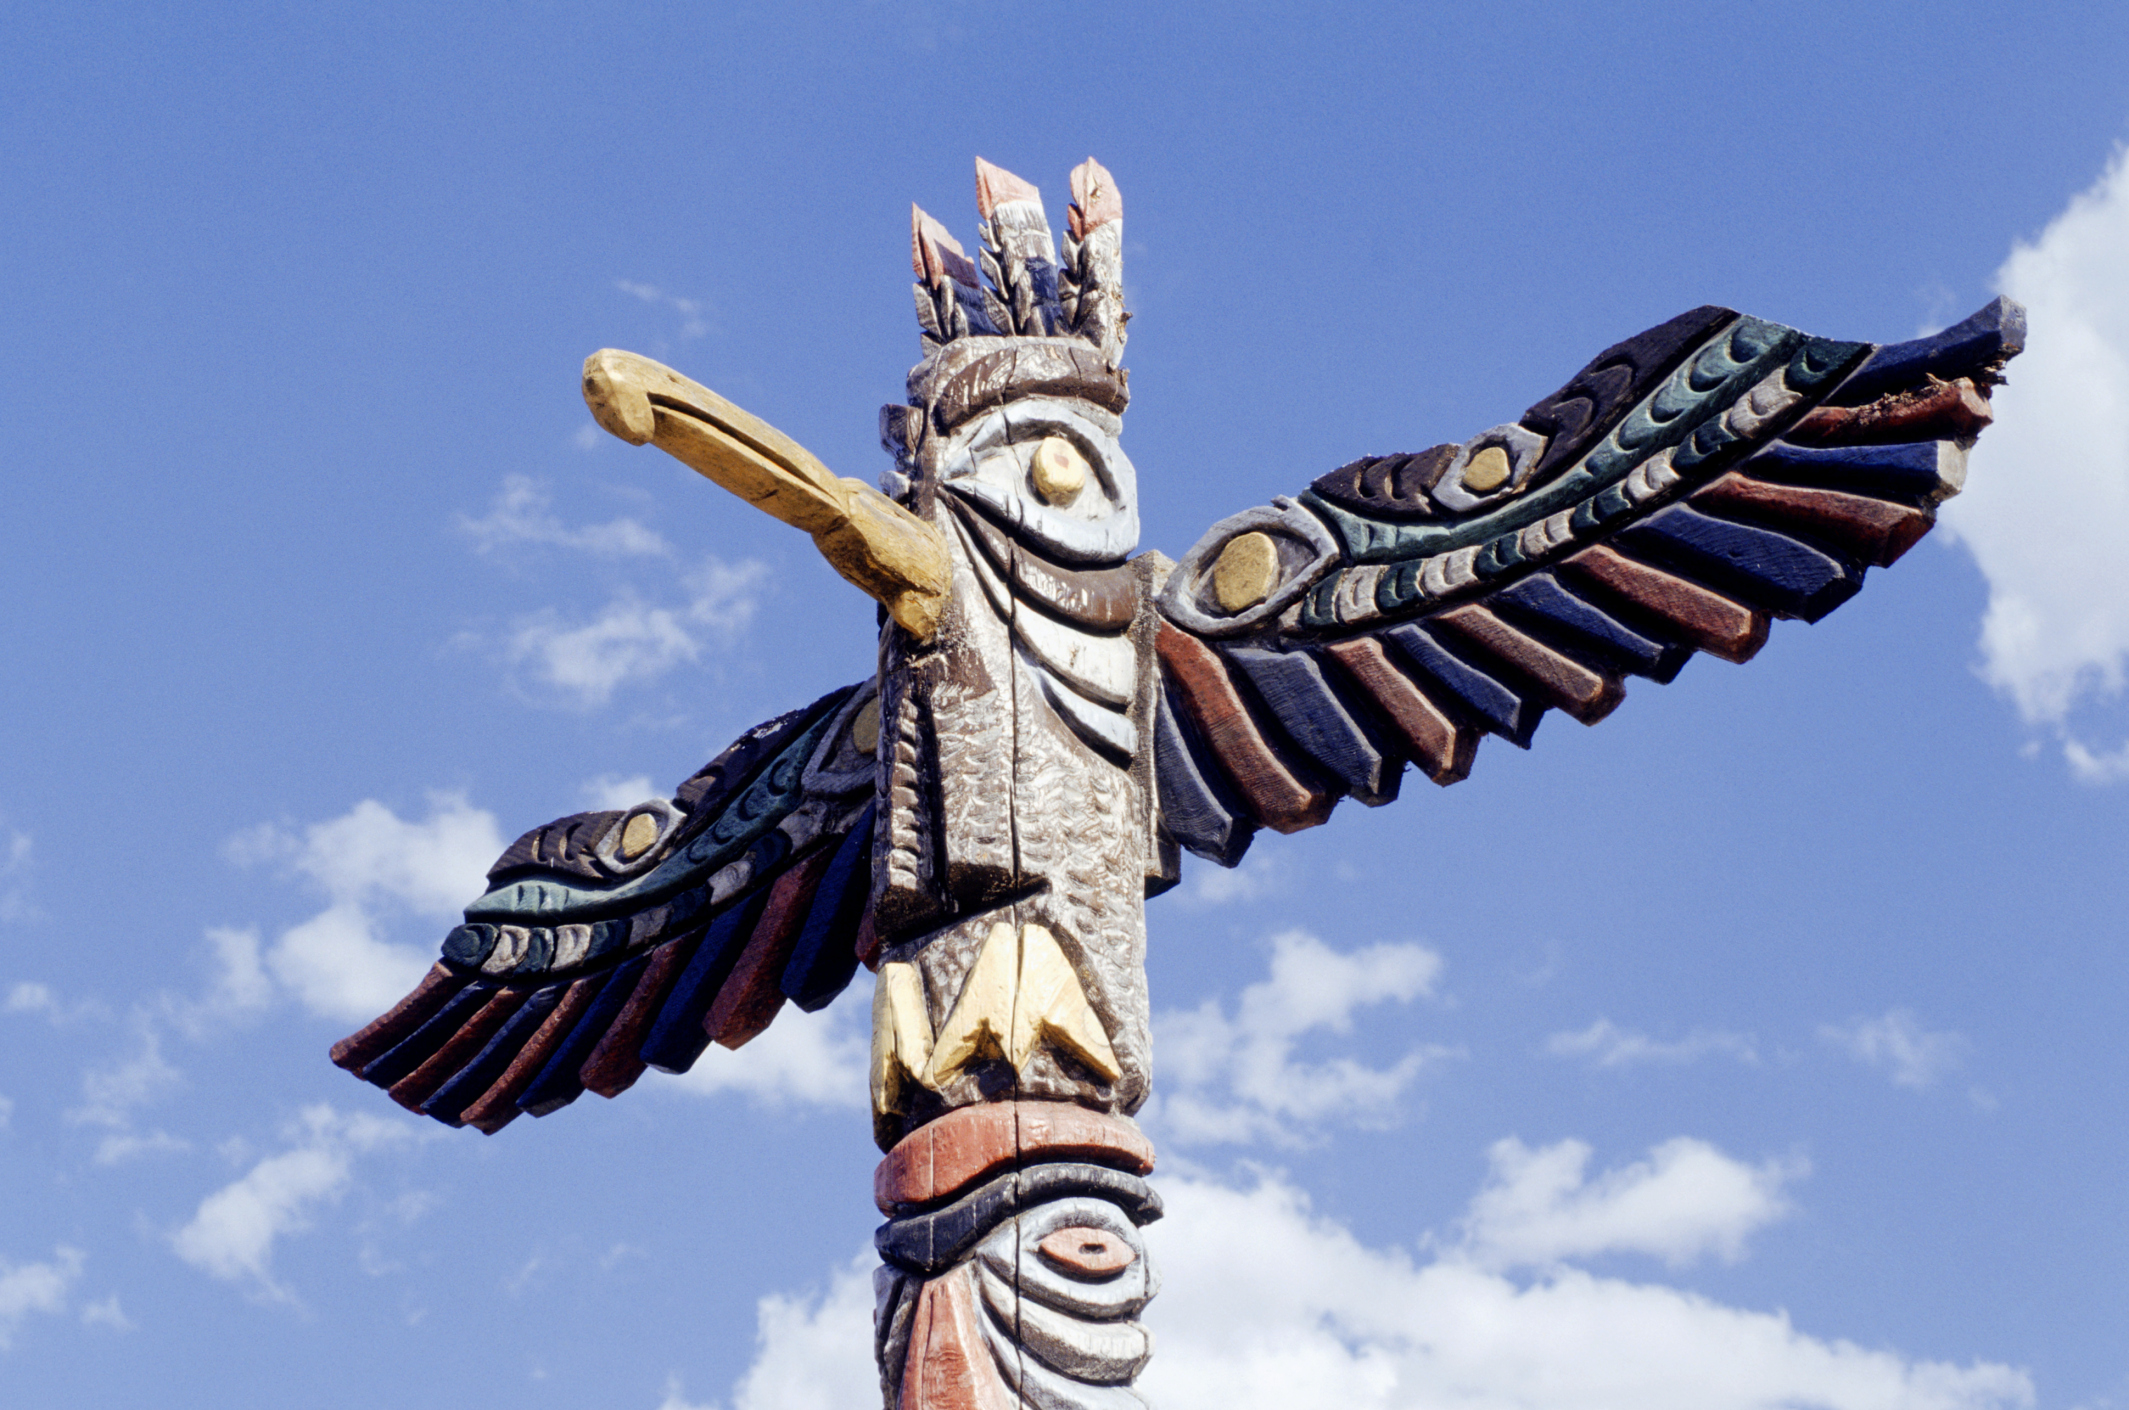 Native American wooden totem in shape of bird, close-up